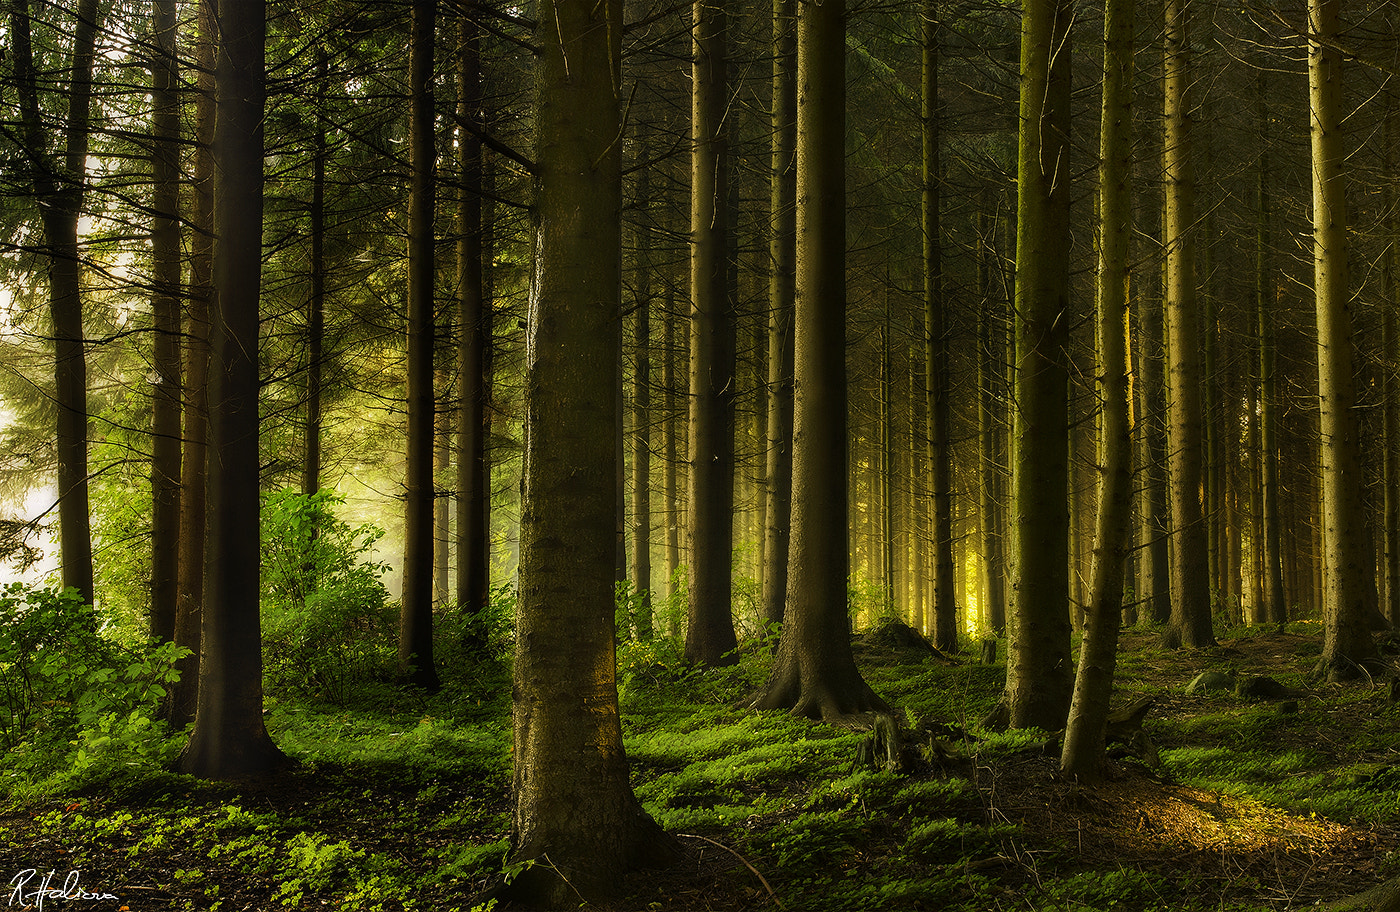 Photograph Grimms Forest by Robin Halioua on 500px